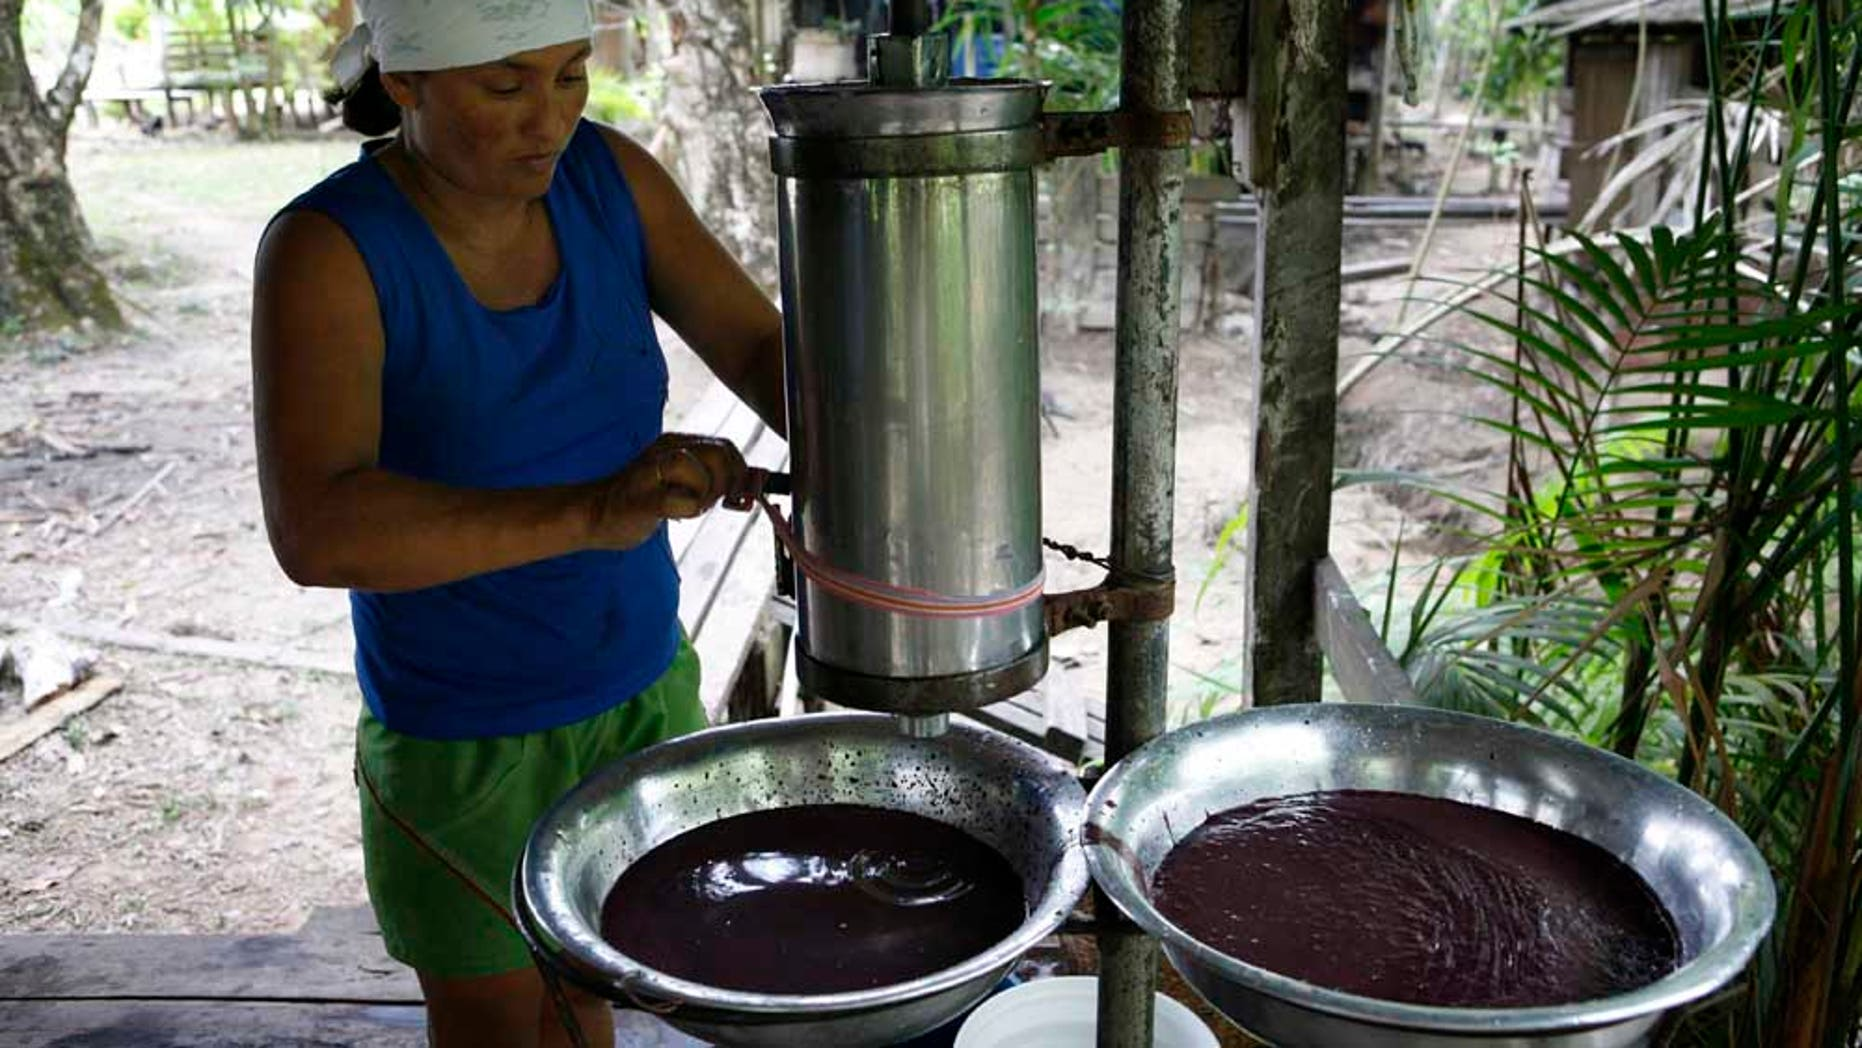 Oct 26, 2007 - Picanco River, Amazon, Brazil - The Ribeirinhos (river people) living on the Picanco River, Amozanian Estuary. LURDIEL DE SOUZA MAIA (age 33) makes Acai berry pulp. Intensive cattle and soya plant farming is decimating the Amazon rainforest, but there is hope. A marble-sized, purple berry is the staple ingredient of a popular smoothie  (Newscom TagID: zumawirewestphotos553698) [Photo via Newscom]